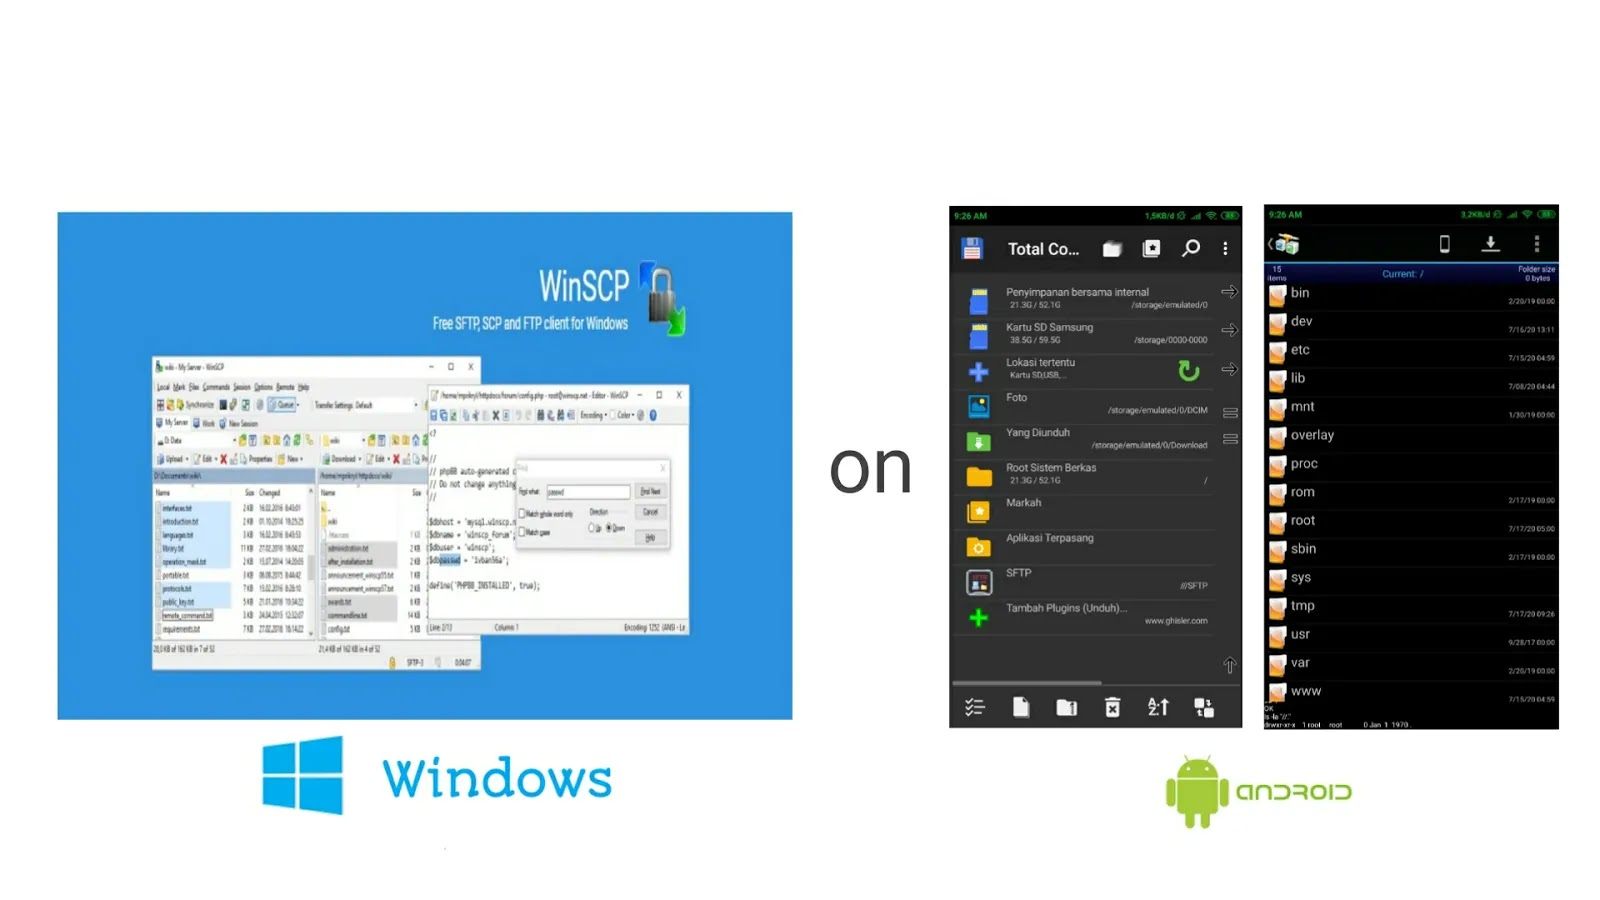 2 Aplikasi Alternatif Pengganti WinSCP Windows di Android